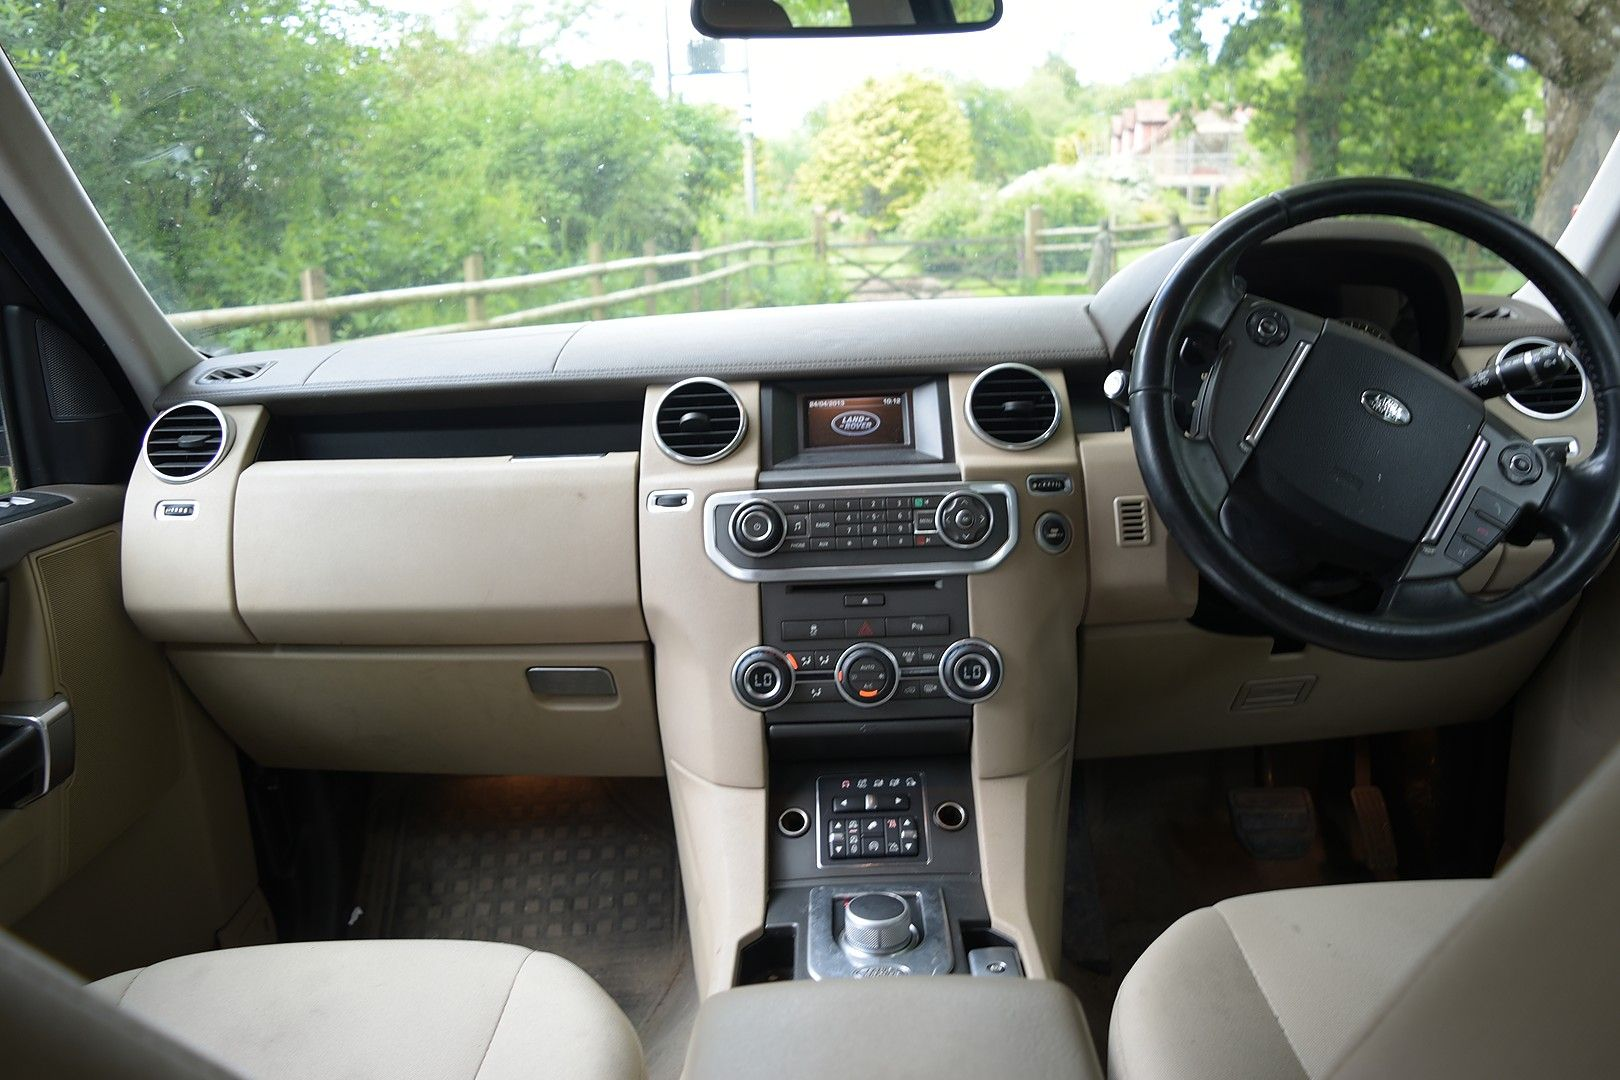 LAND ROVER Discovery 3.0 SDV6 GS - Thumbnail 18